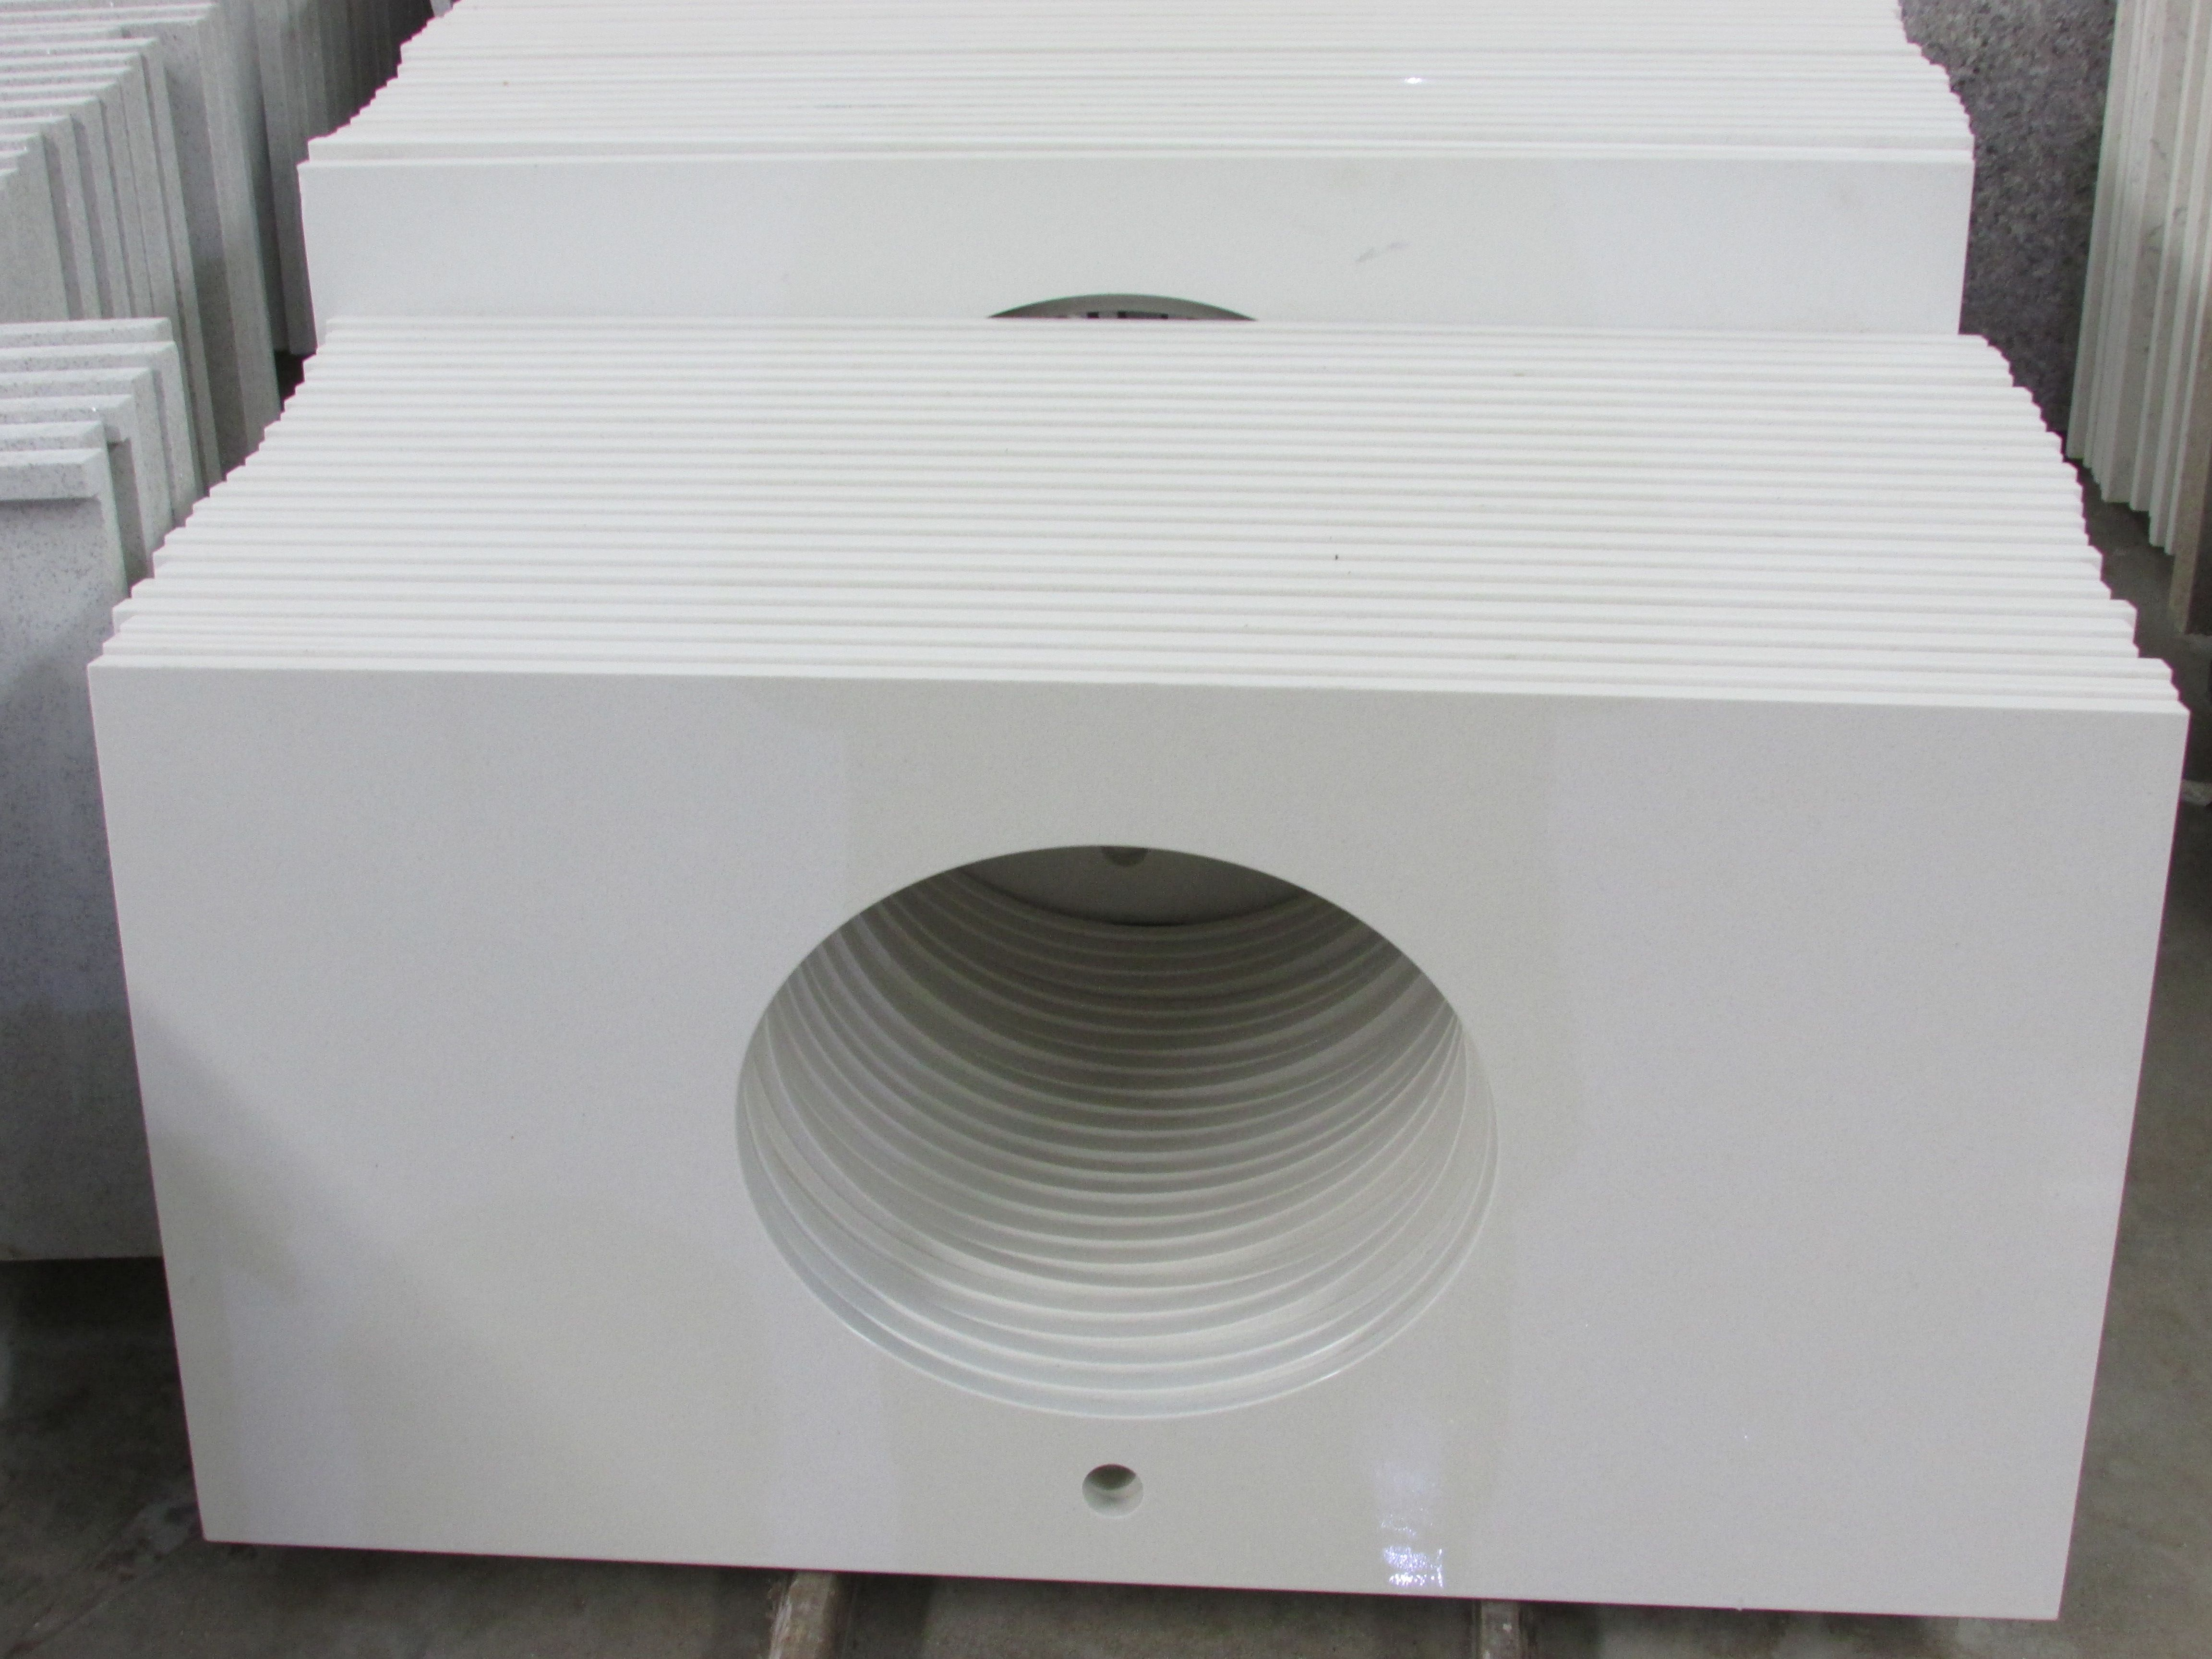 Best Pure White Quartz Vanity Tops Made By Historystone With 640 x 480